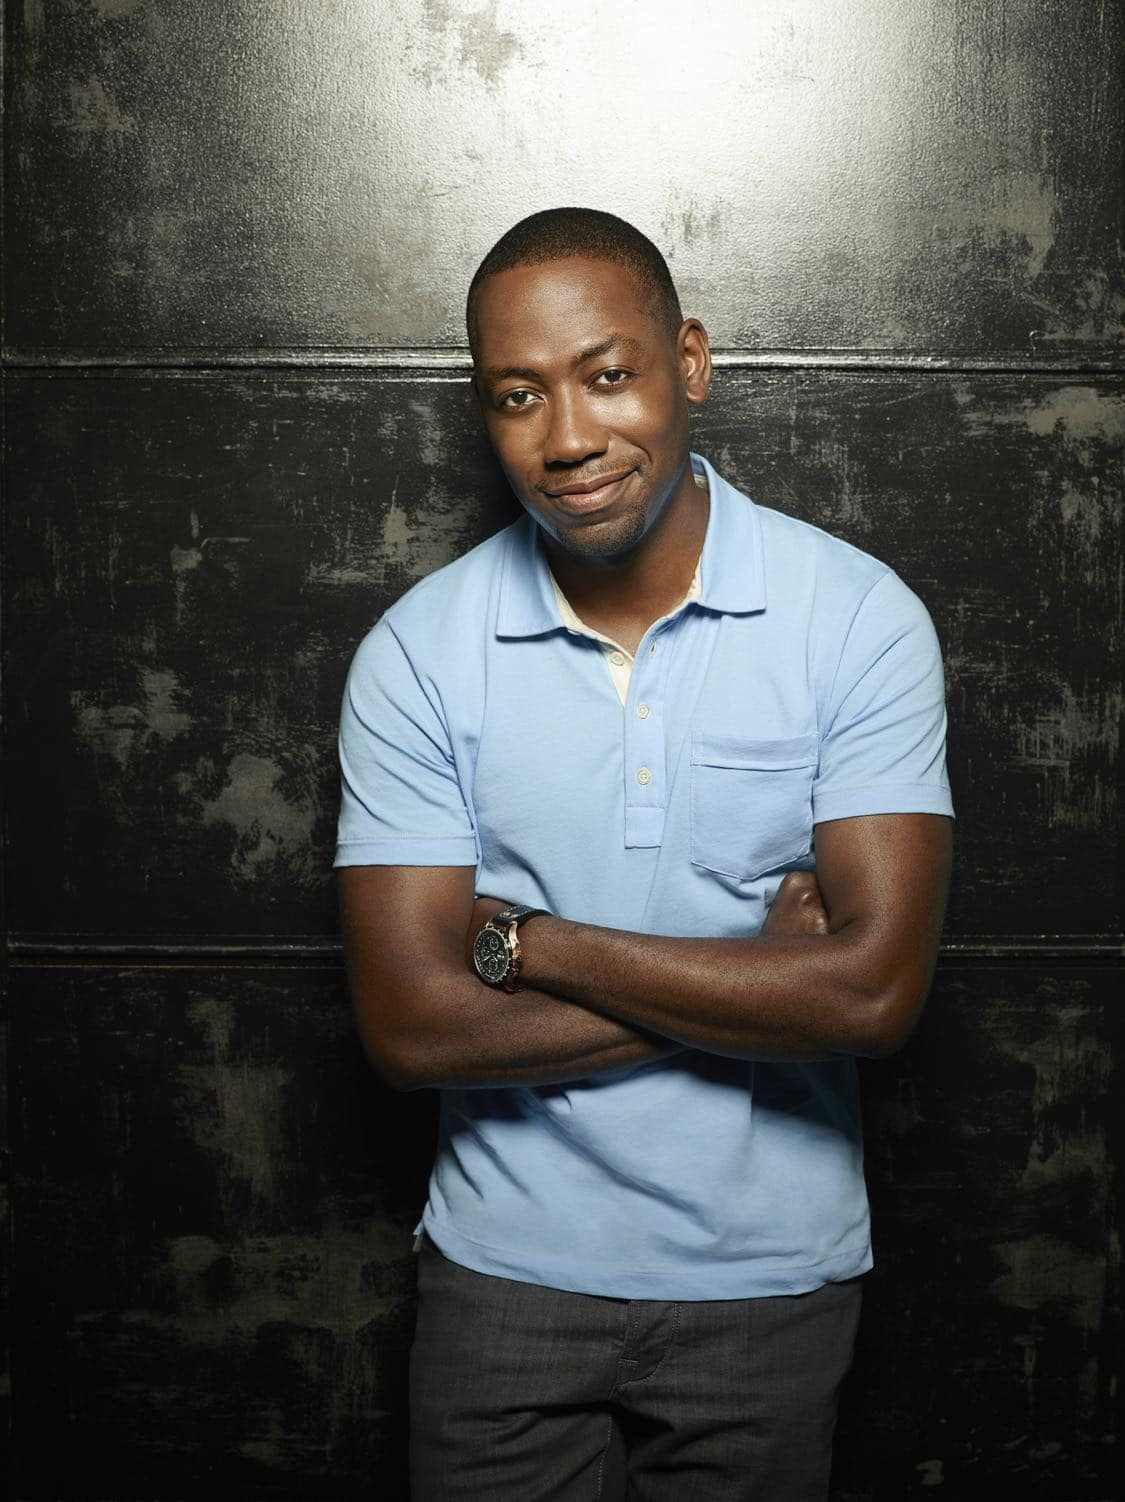 NEW GIRL: Lamorne Morris returns as Winston. NEW GIRL premieres Tuesday, Sept. 20 (8:30-9:00 PM ET/PT) on FOX.